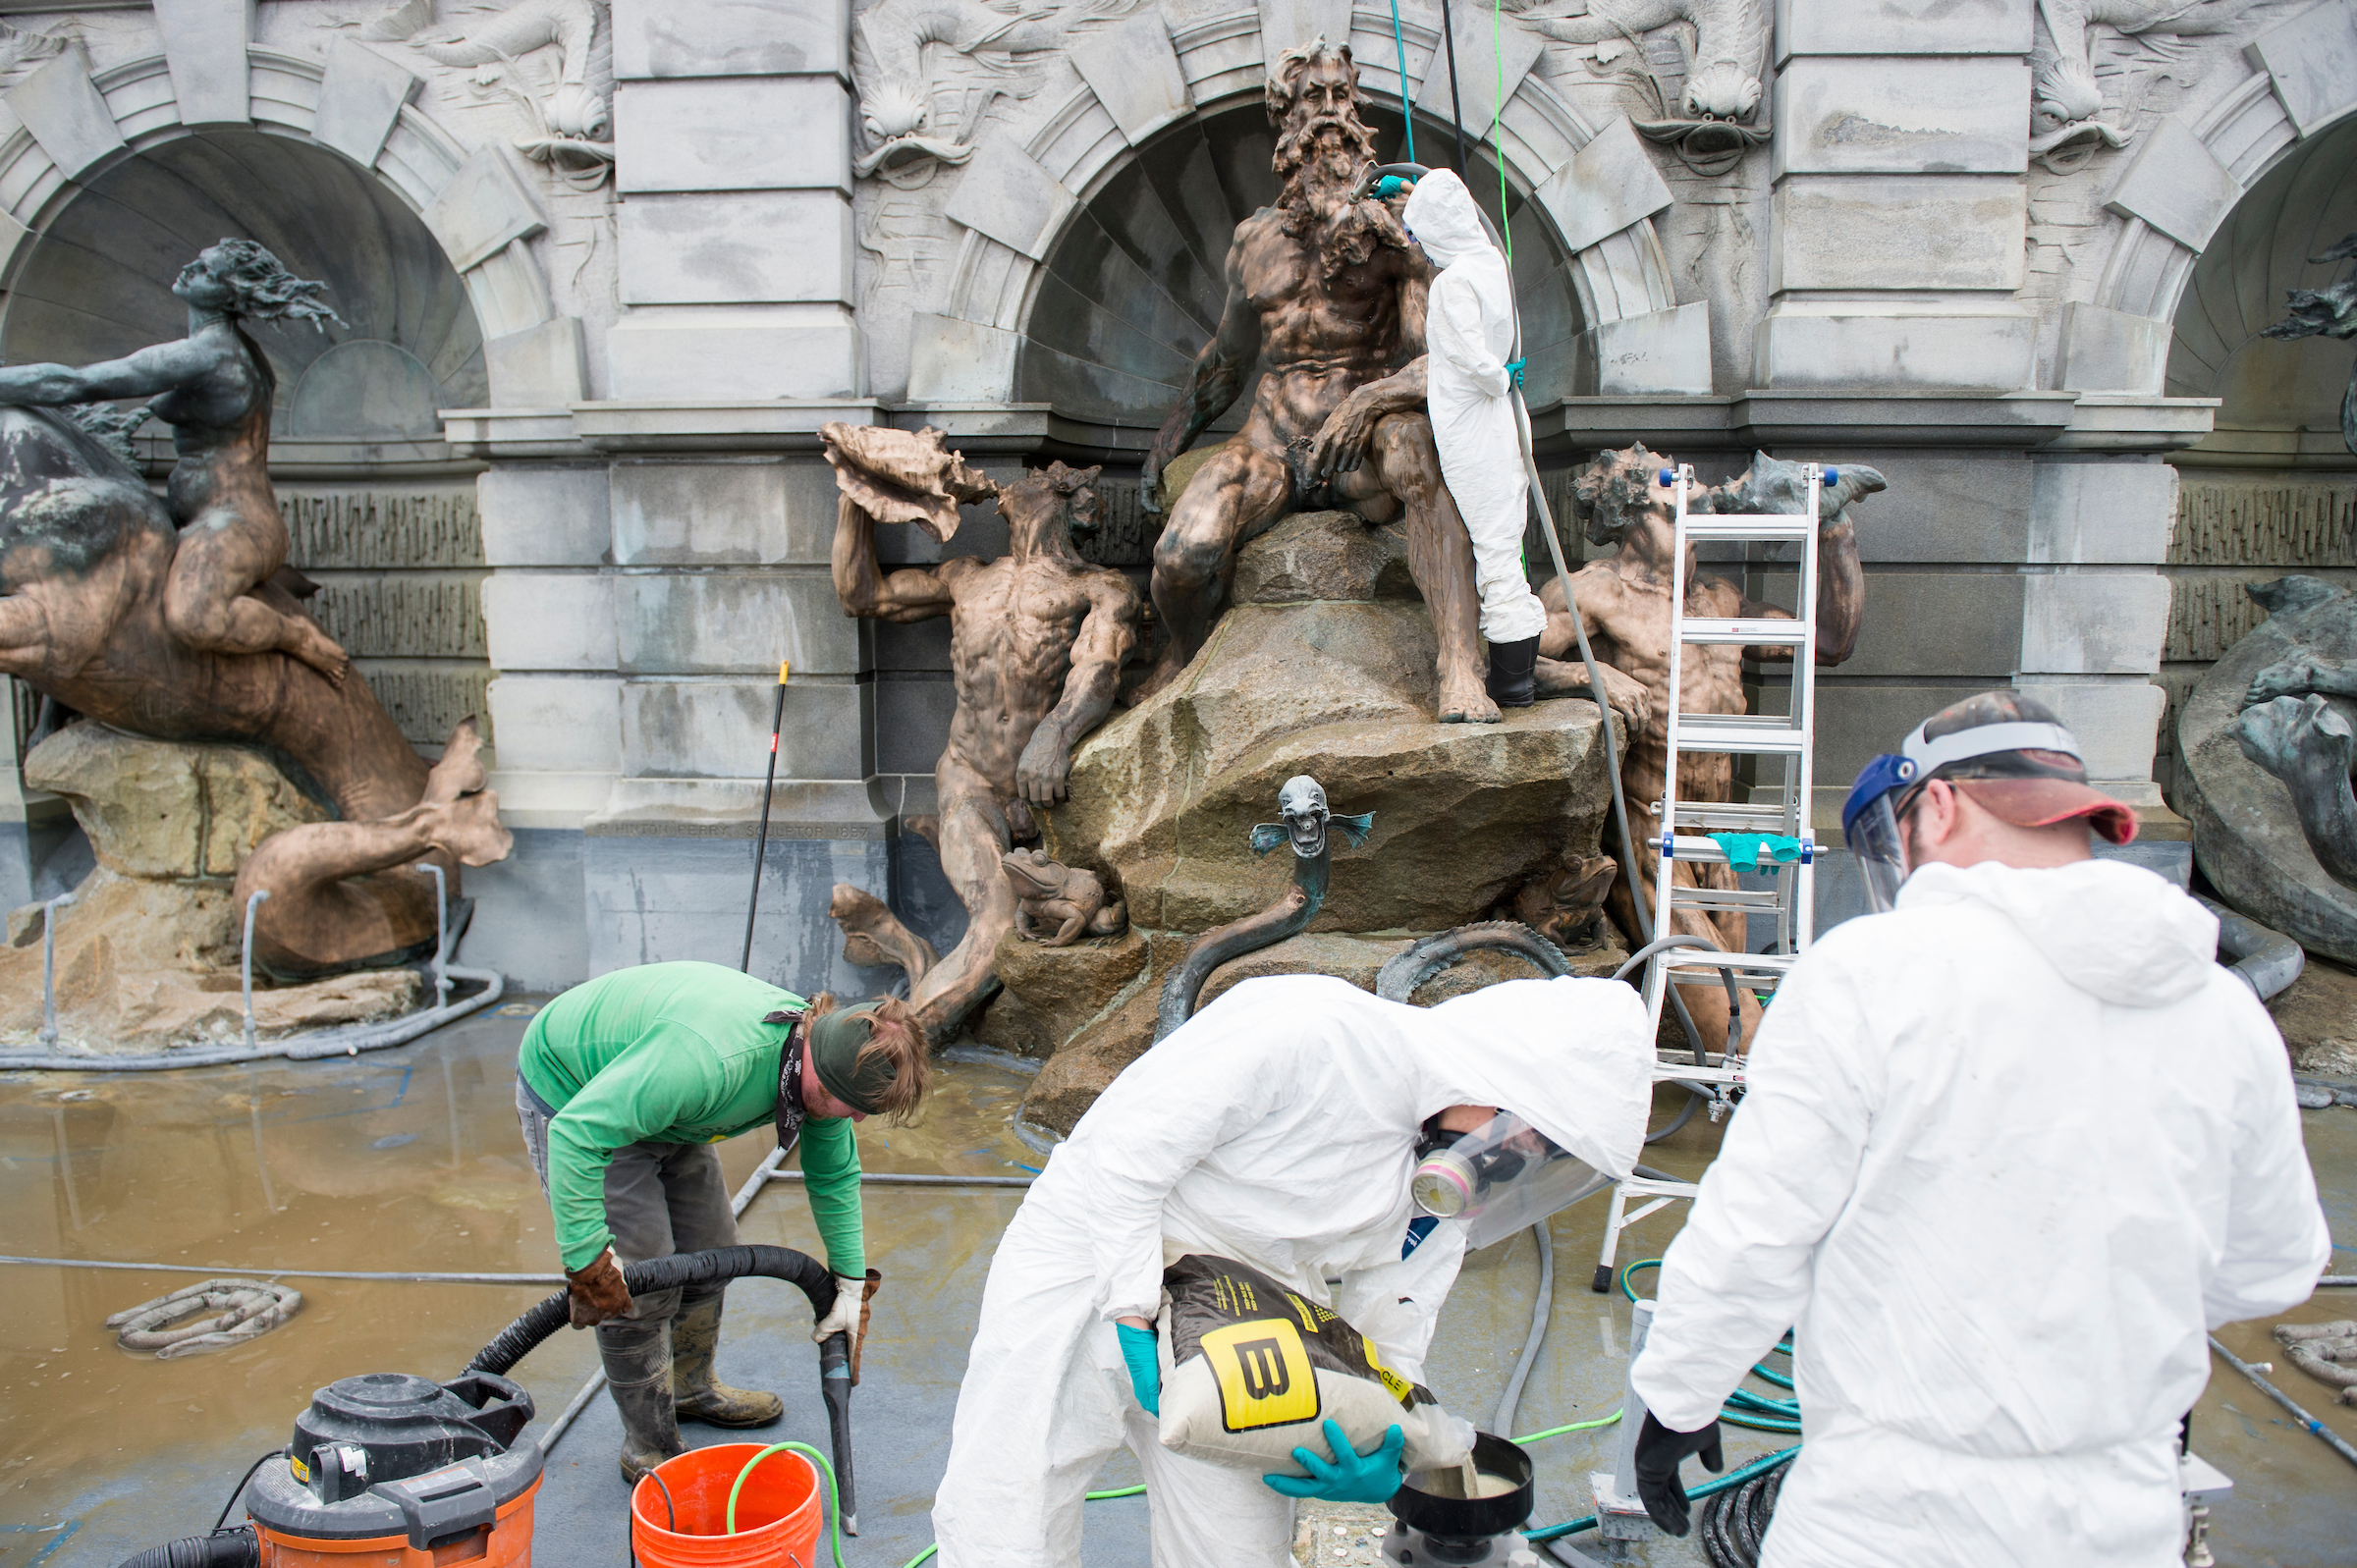 UNITED STATES - MAY 24: The Court of Neptune, the fountain at the front of the Thomas Jefferson Building of the Library of Congress, gets a cleaning on Wednesday, May 24, 2017. (Photo By Bill Clark/CQ Roll Call)